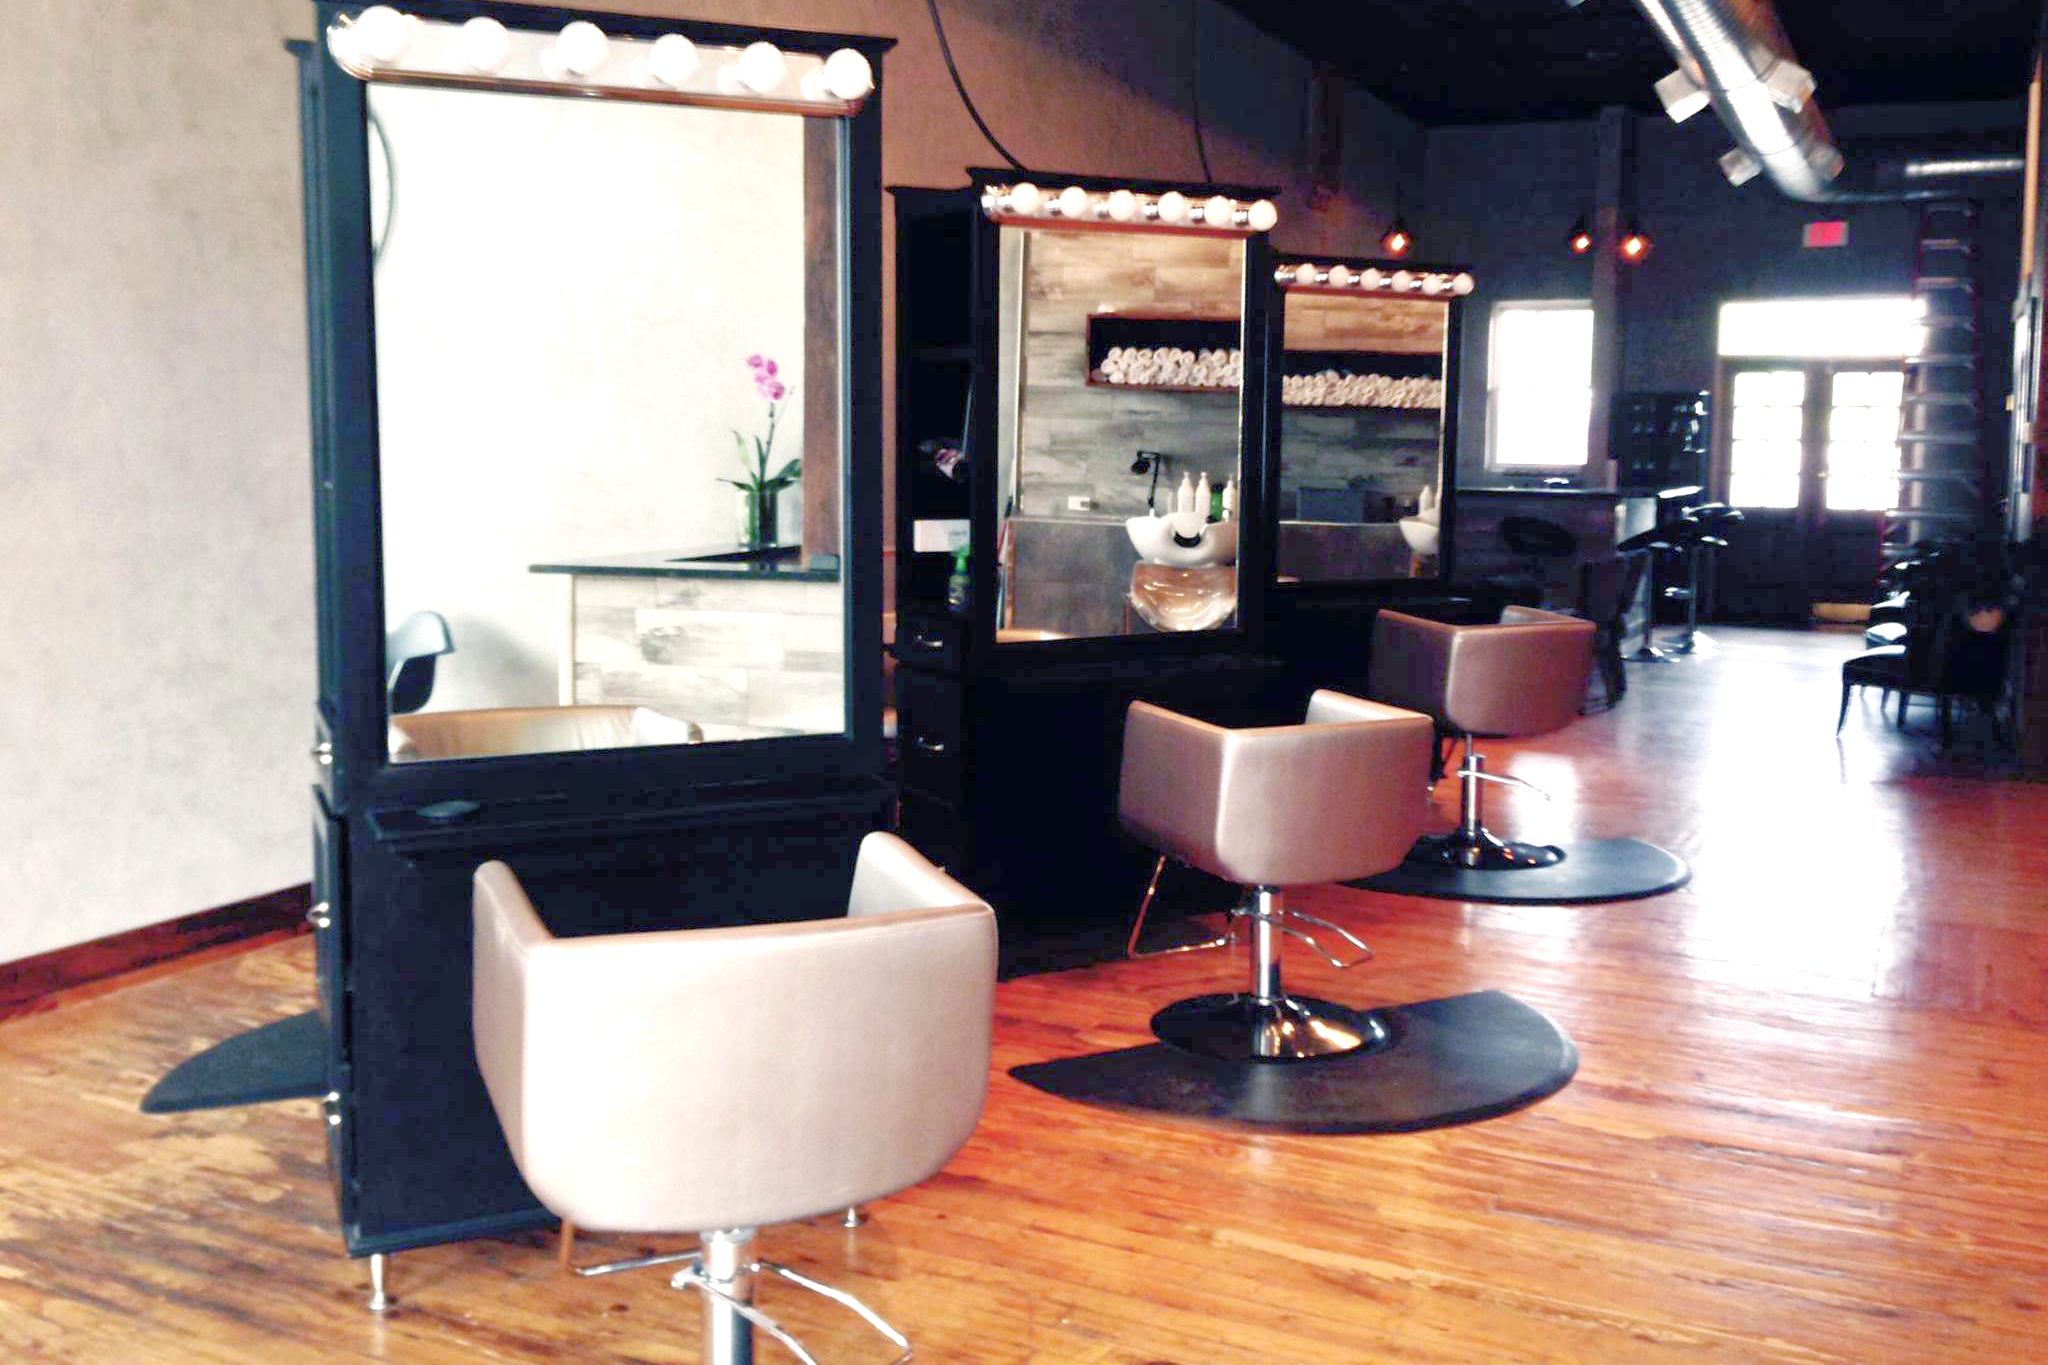 Mane salon and social house in springfield mo vagaro for 417 salon downtown